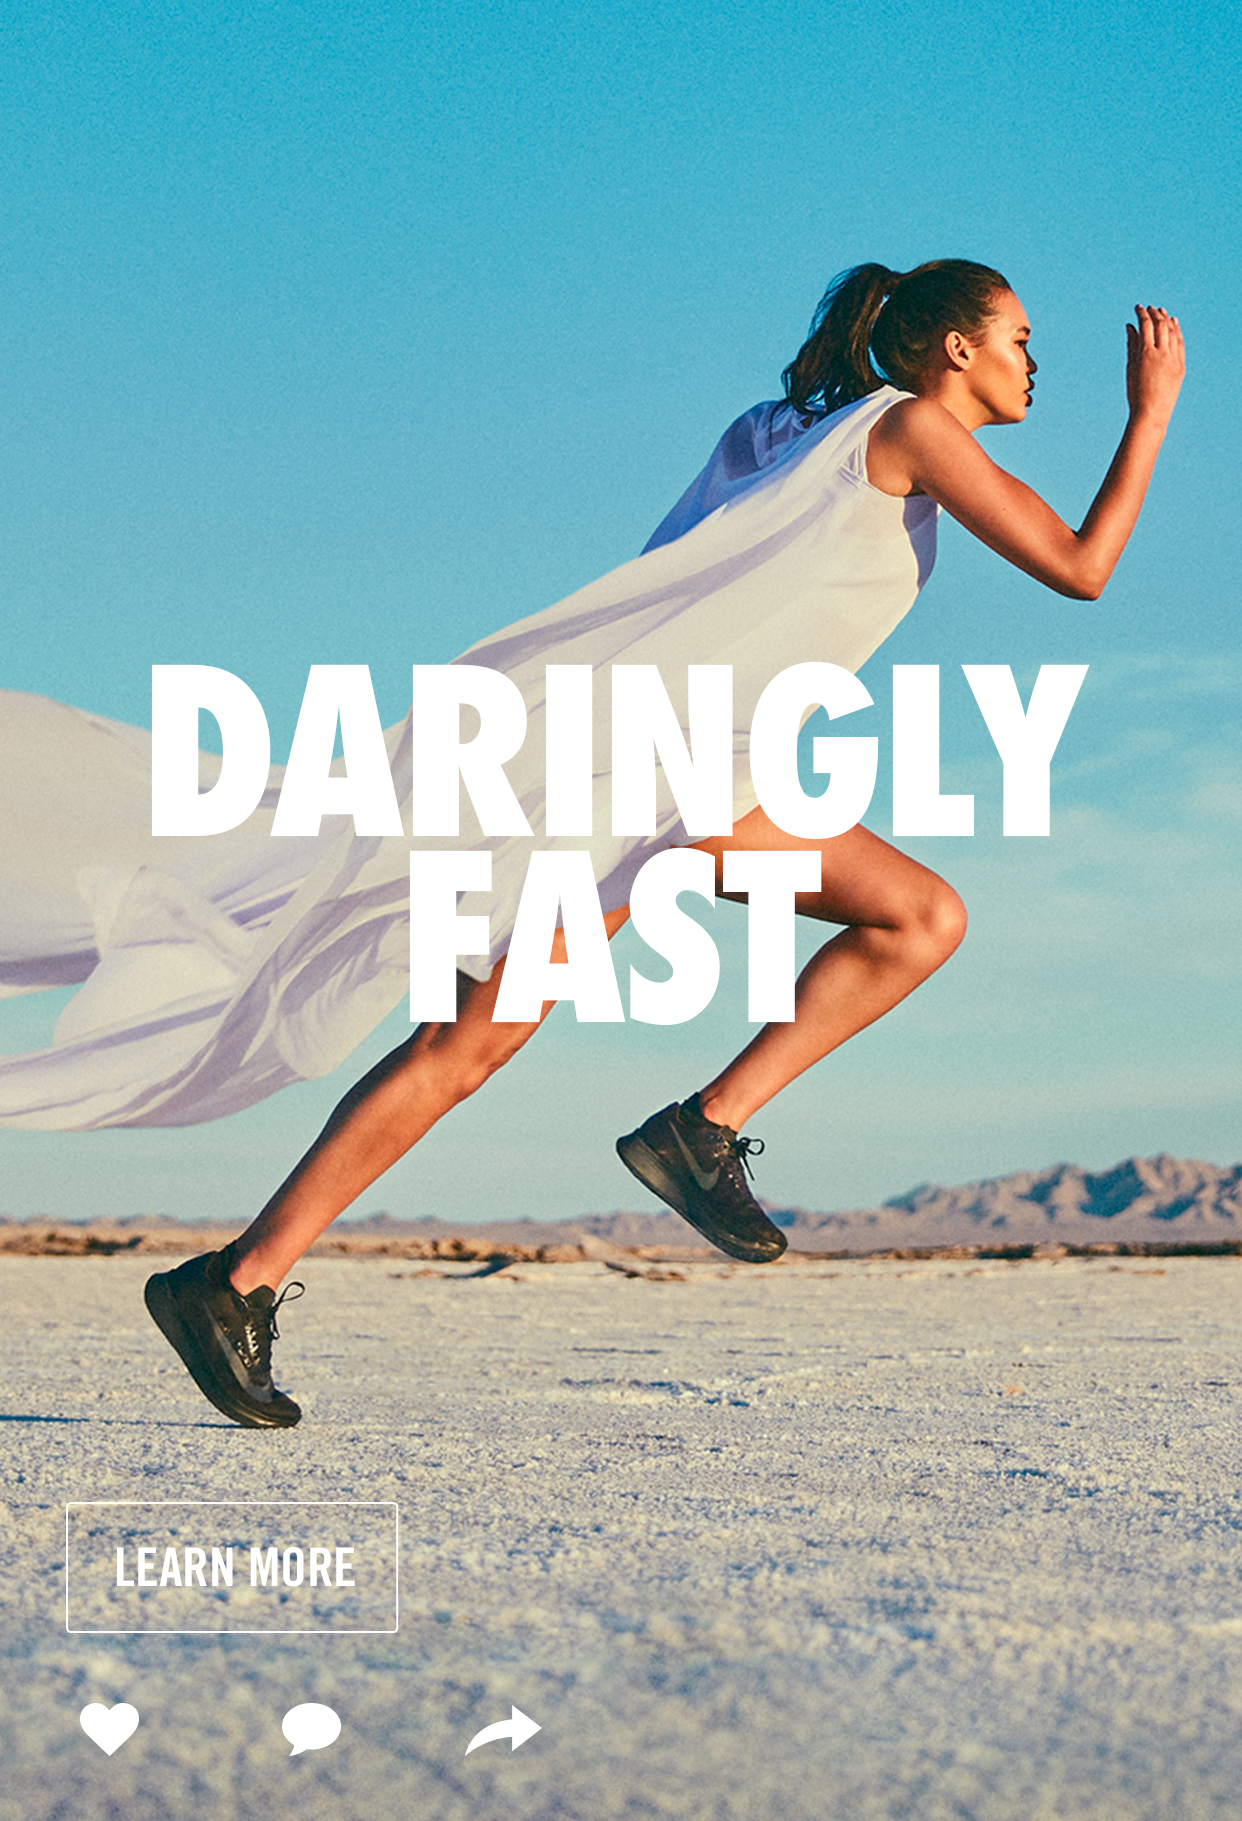 NIKE WOMEN'S RUNNING | DARINGLY FAST